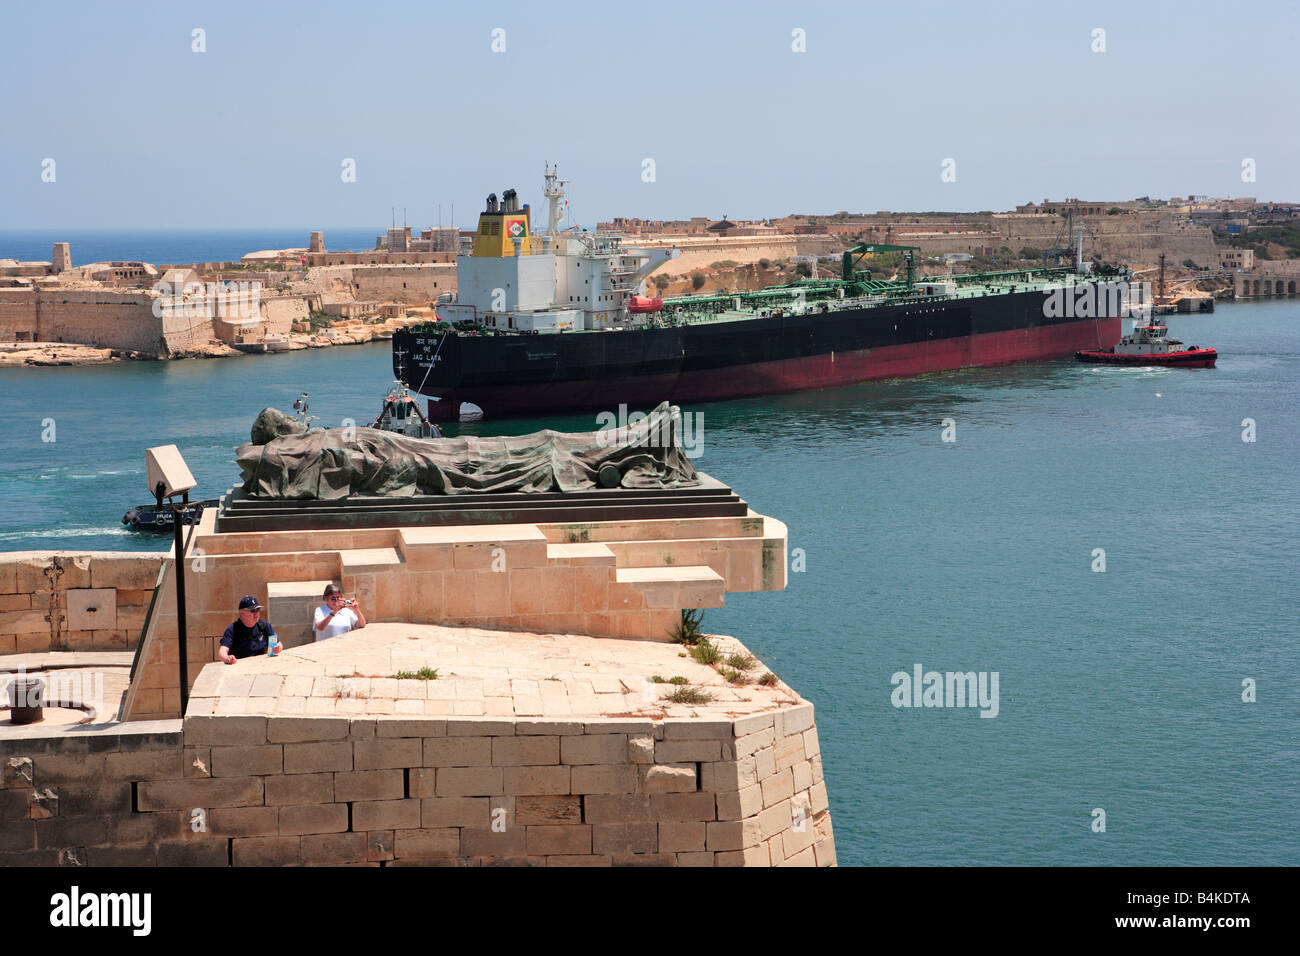 Oil Tanker docking in Grand Harbour, Malta - Stock Image